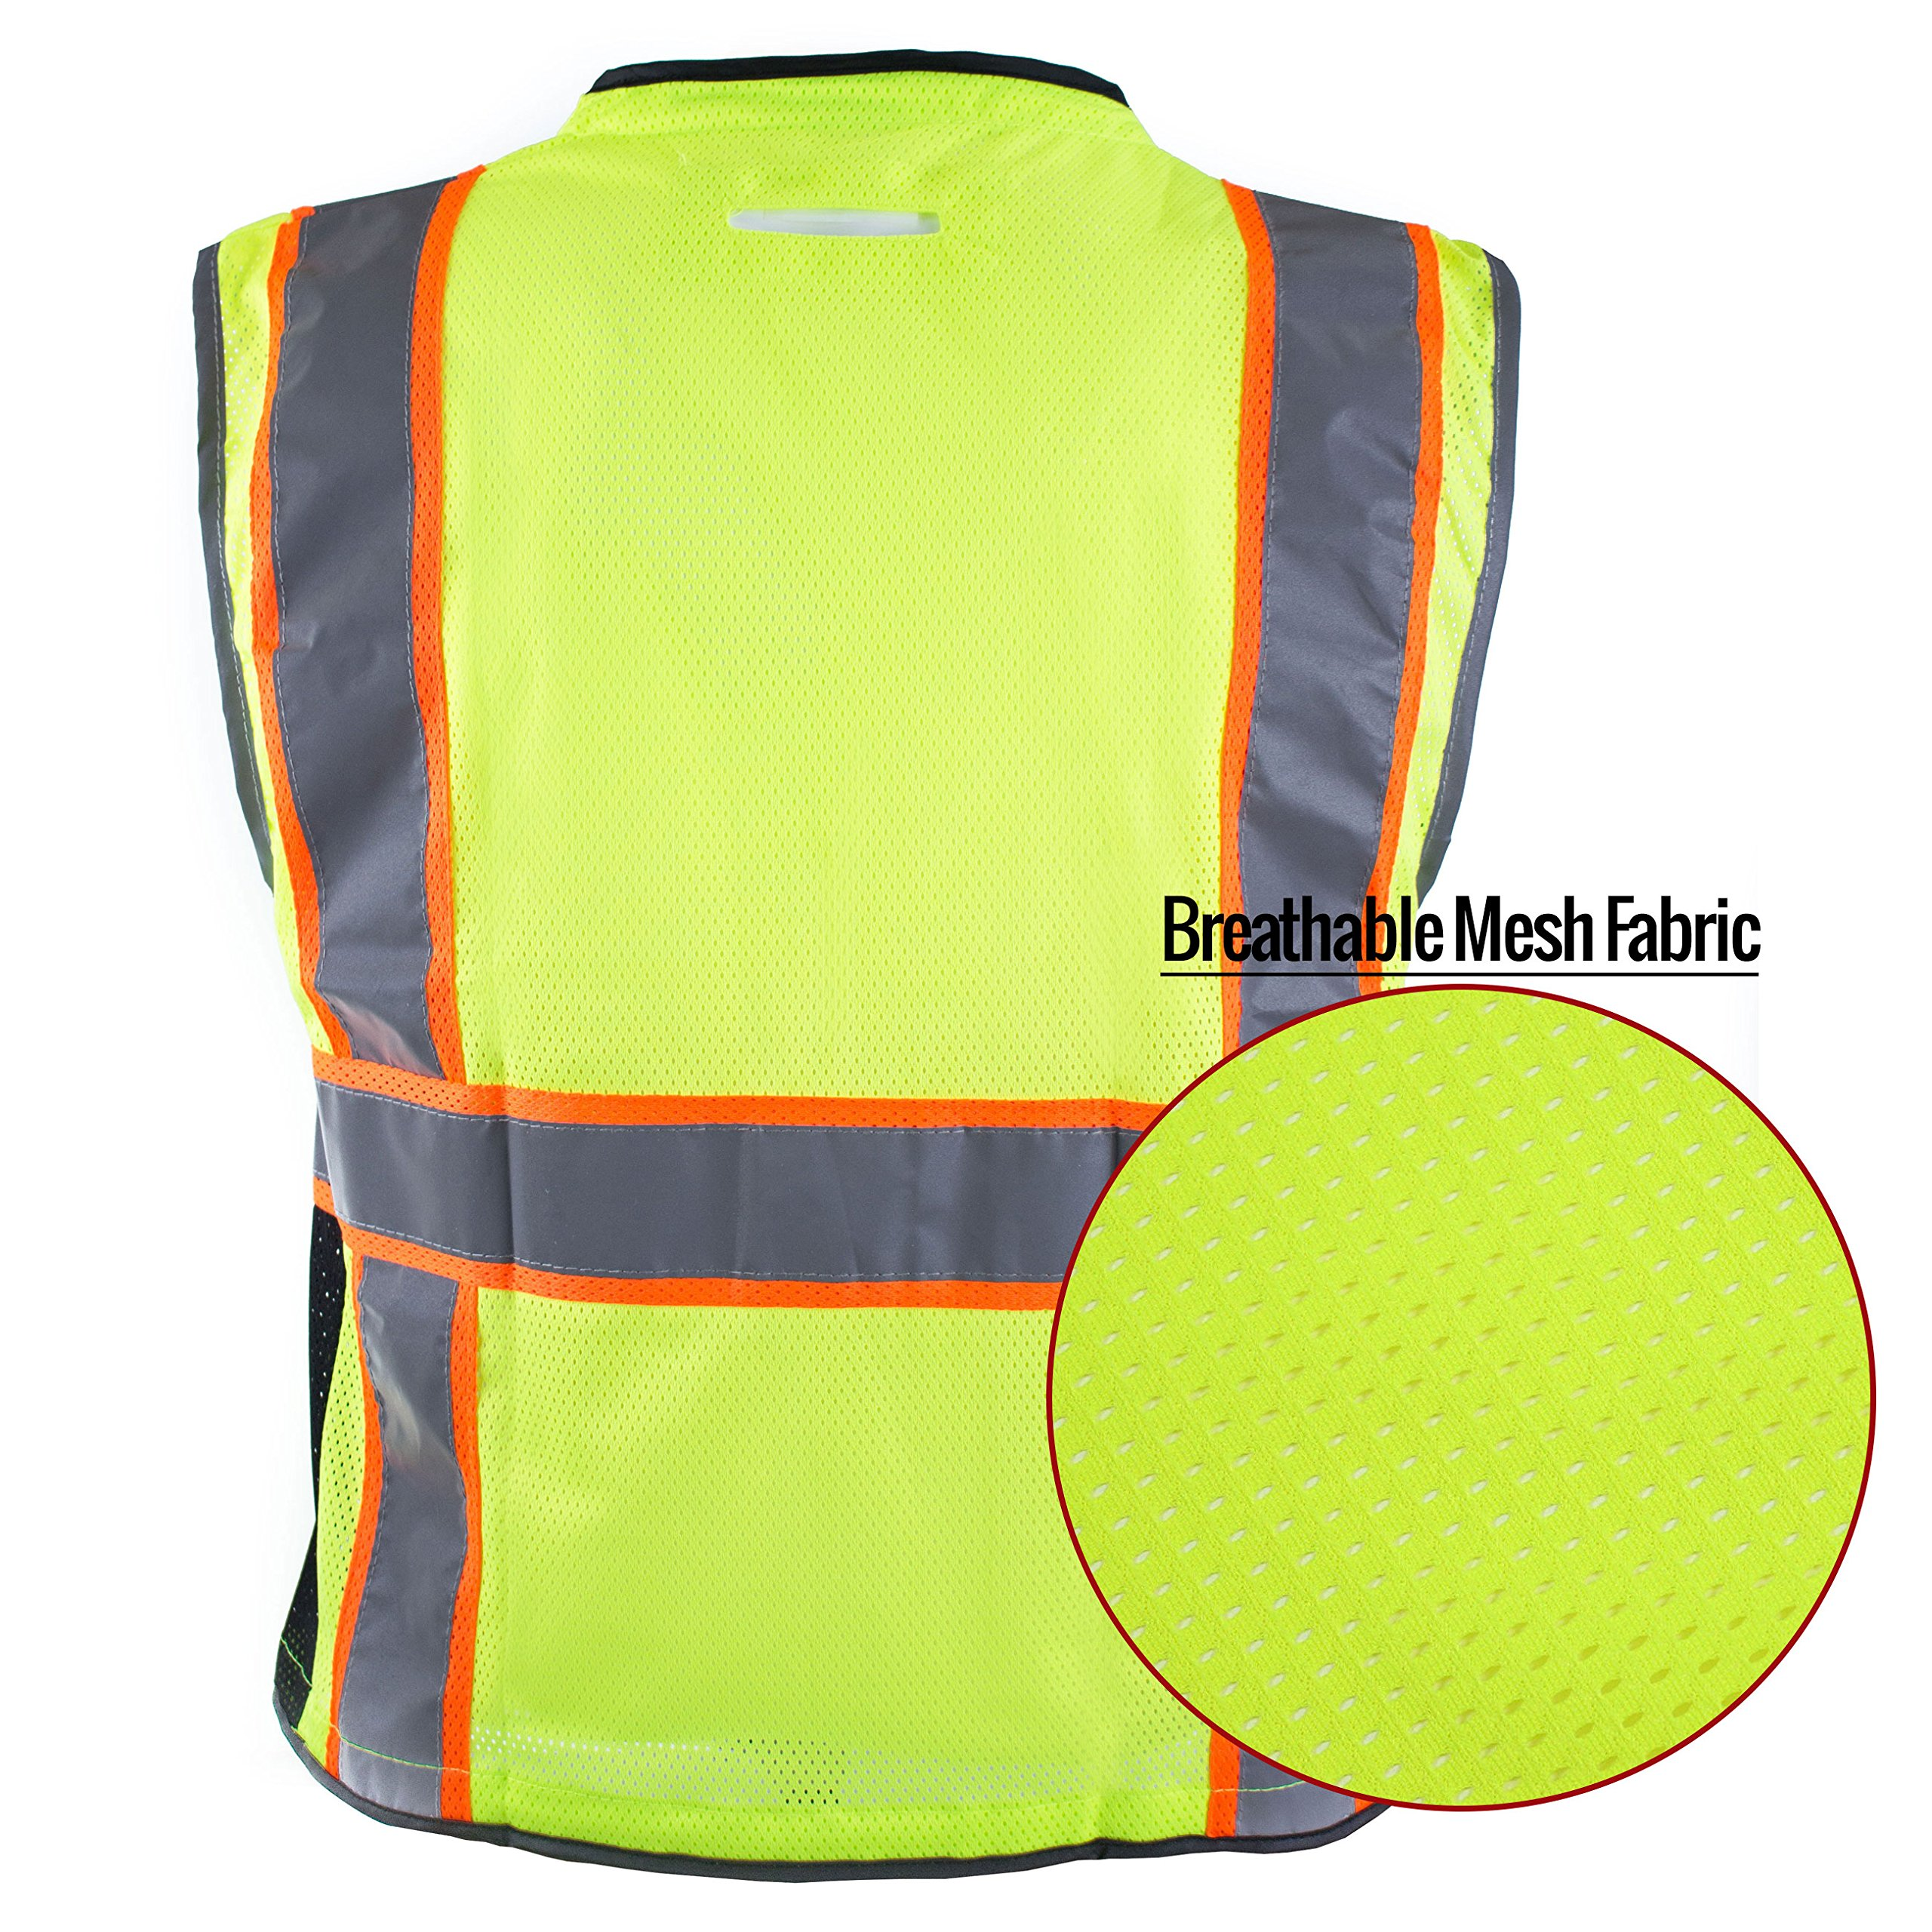 RK Safety P6612 Class 2 High Visible Two Tone Reflective Strips Breathable Mesh Vest, Pockets Harness D-Ring Pass Thru, ANSI/ISEA, Construction Motorcycle Traffic Emergency (Lime, Medium) by New York Hi-Viz Workwear (Image #6)